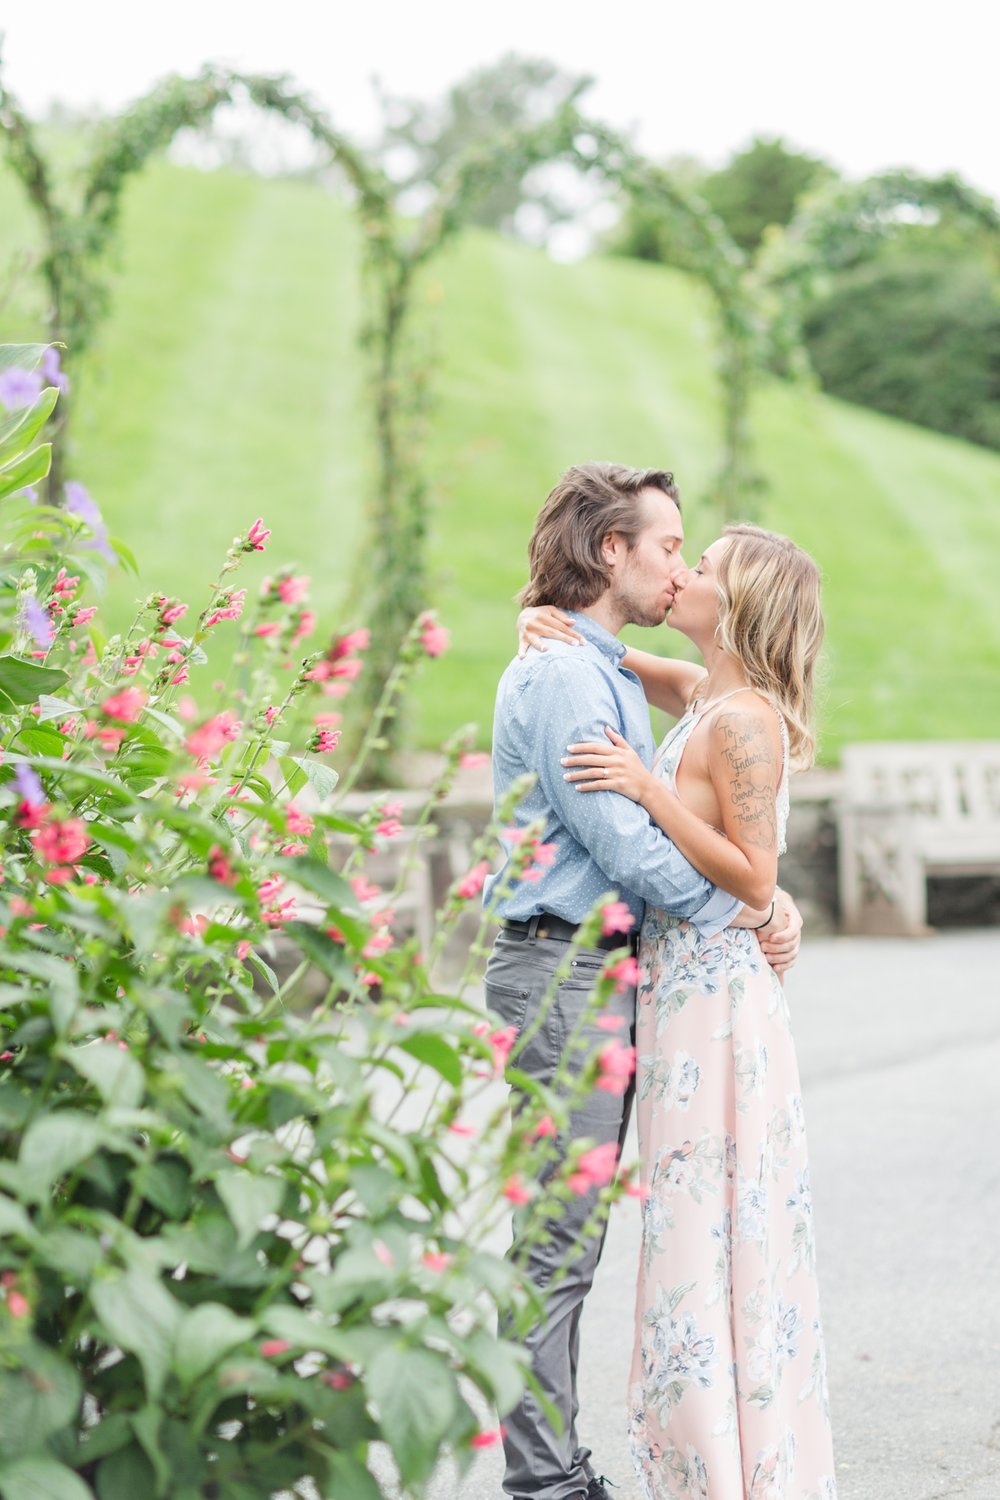 Kaitlyn & Kyle Engagement-11_Longwood-Gardens-Engagement-Pennsylvania-engagement-wedding-photographer-anna-grace-photography-photo.jpg